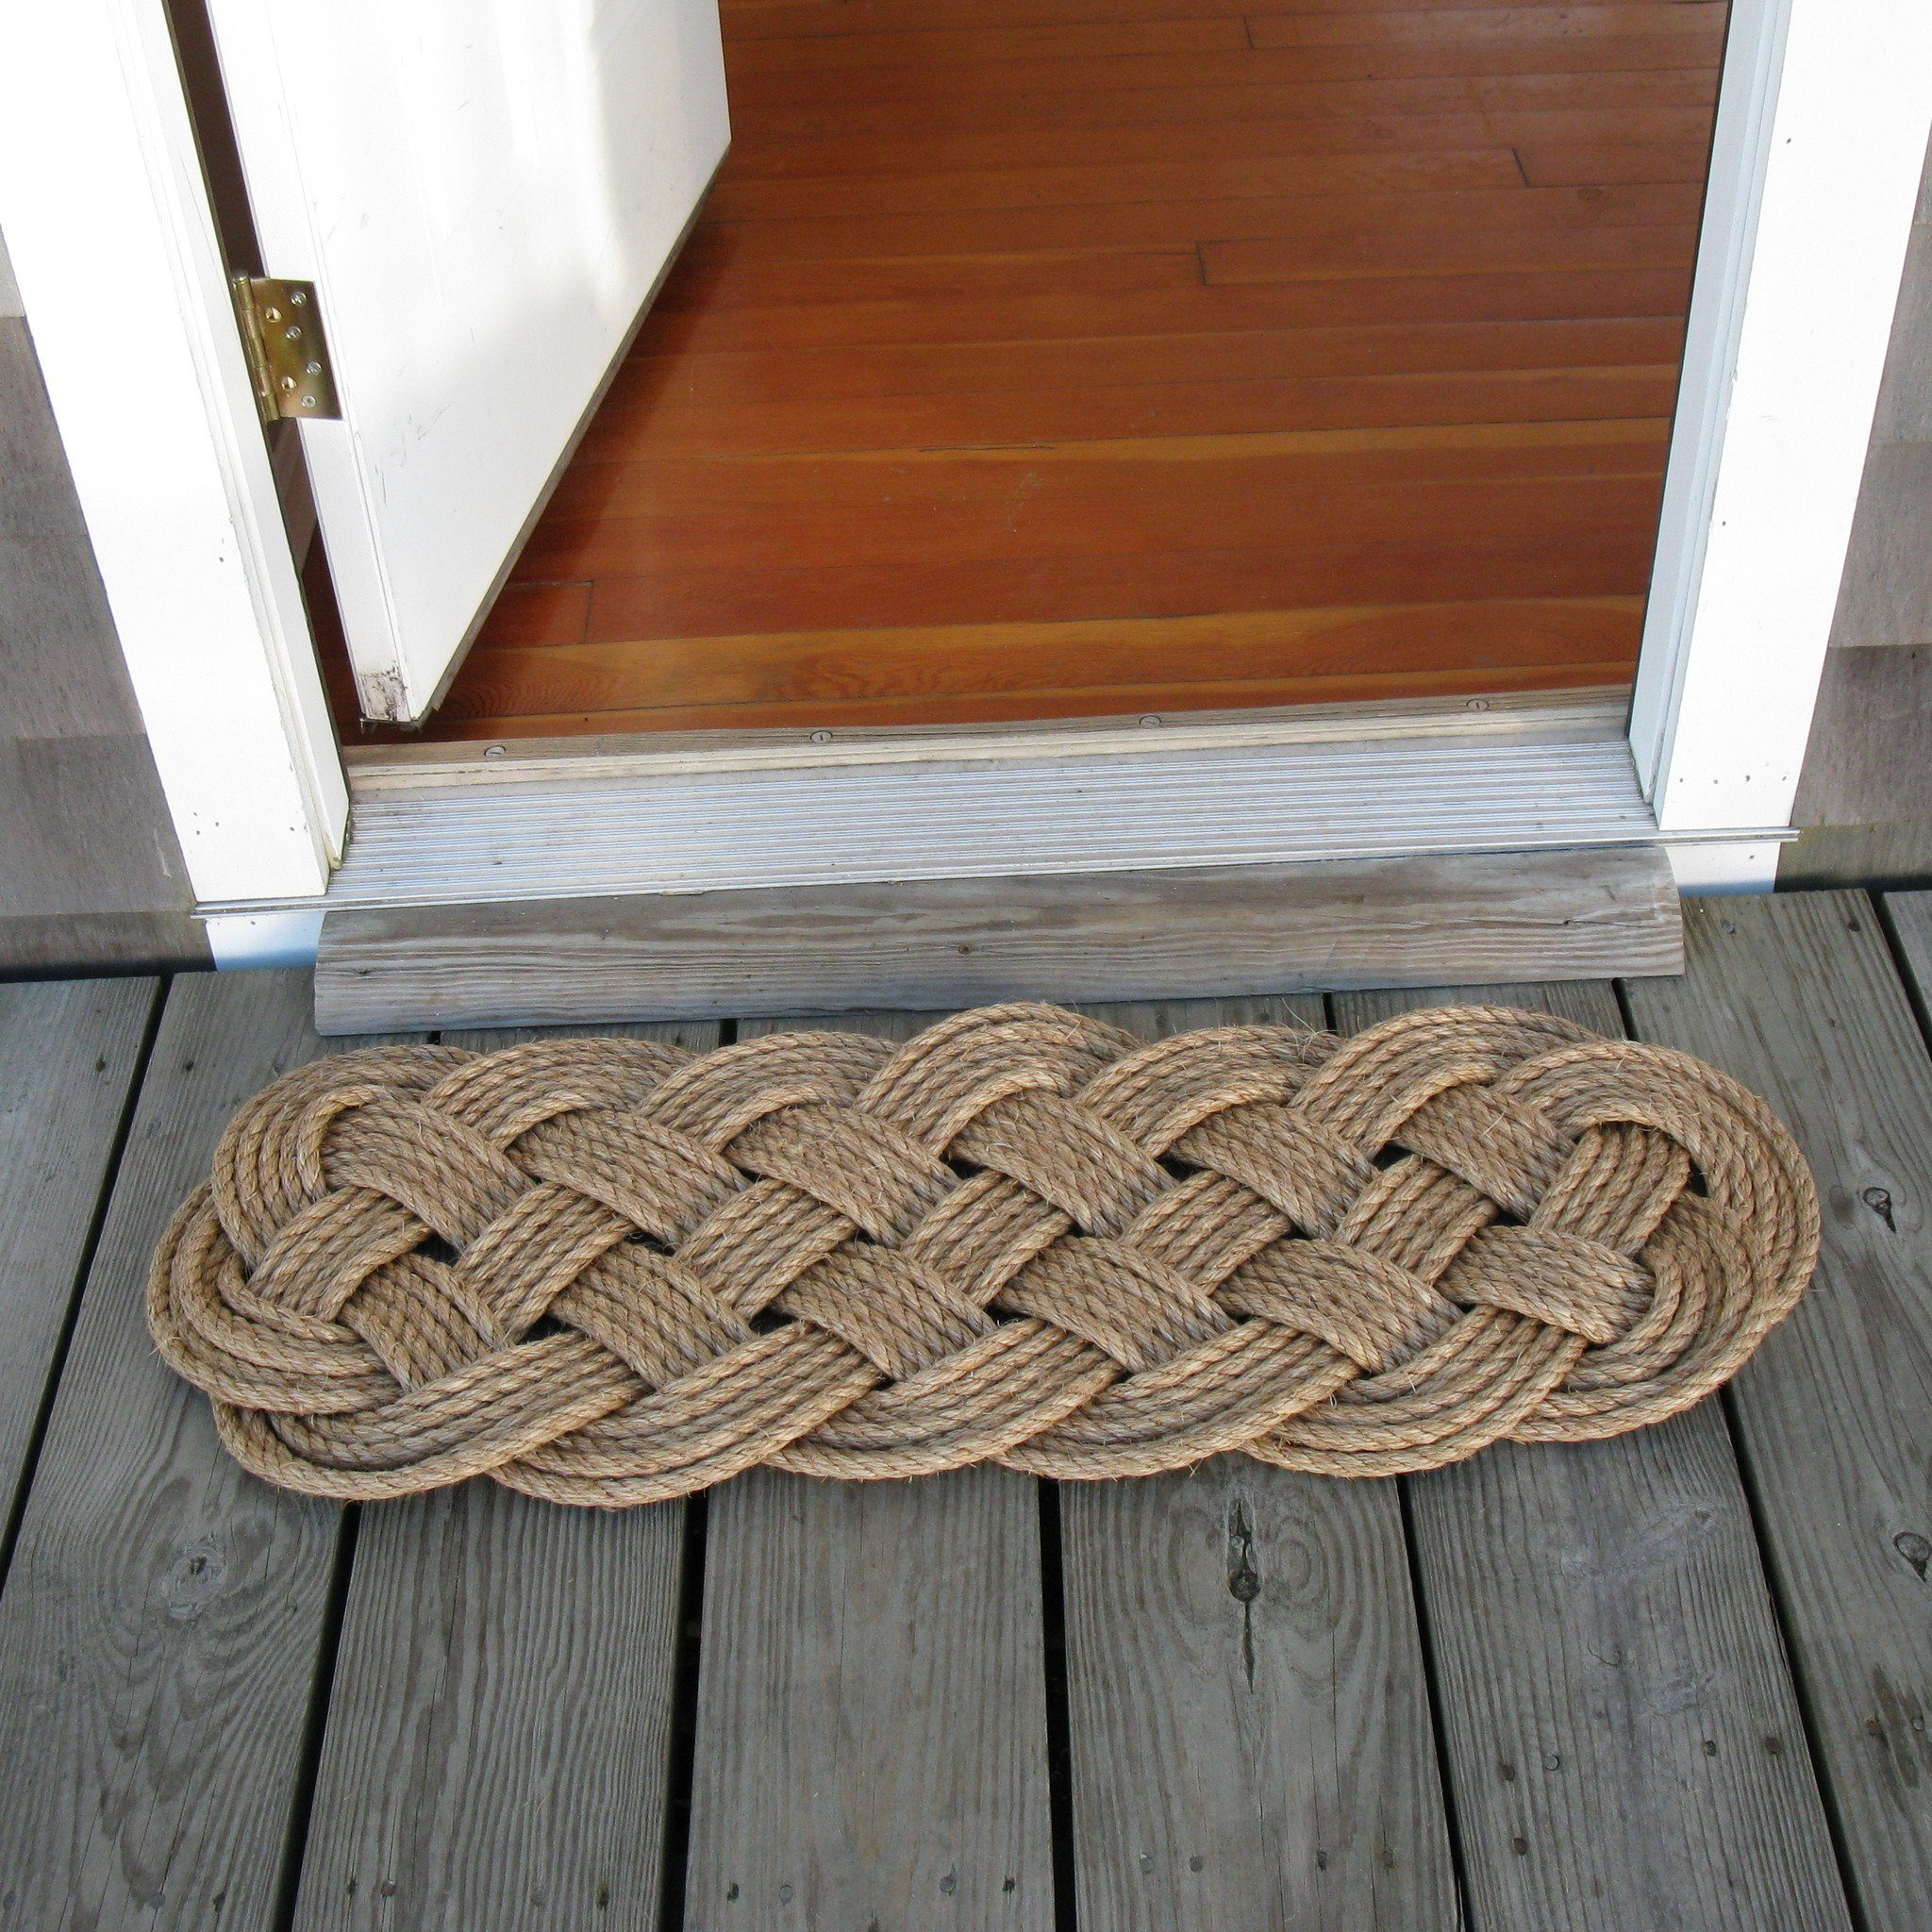 with paver flooring exterior porch door guard also front in paint red weatherguard ideas of doormats colored colorful for outdoor brown mats weather design